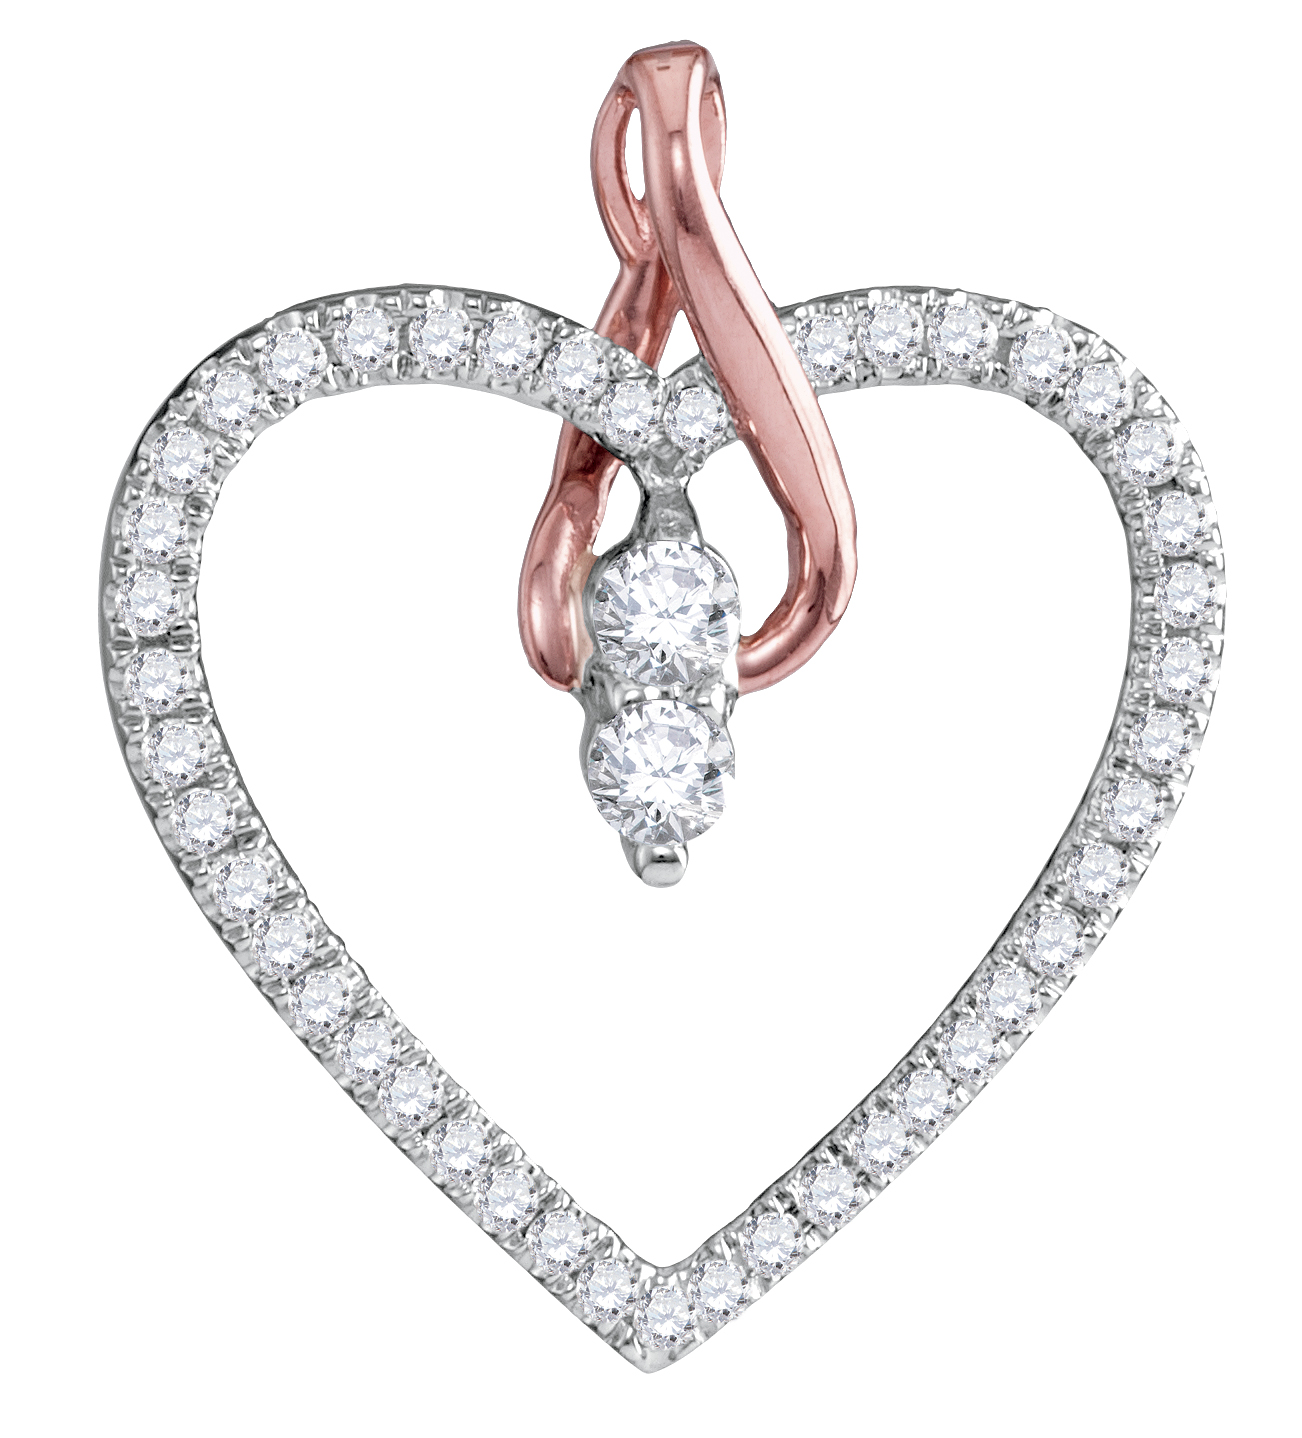 14kt White Gold Womens Round Diamond 2-stone Heart Pendant 1/4 Cttw = .26 Cttw (I2 Clarity, round cut)